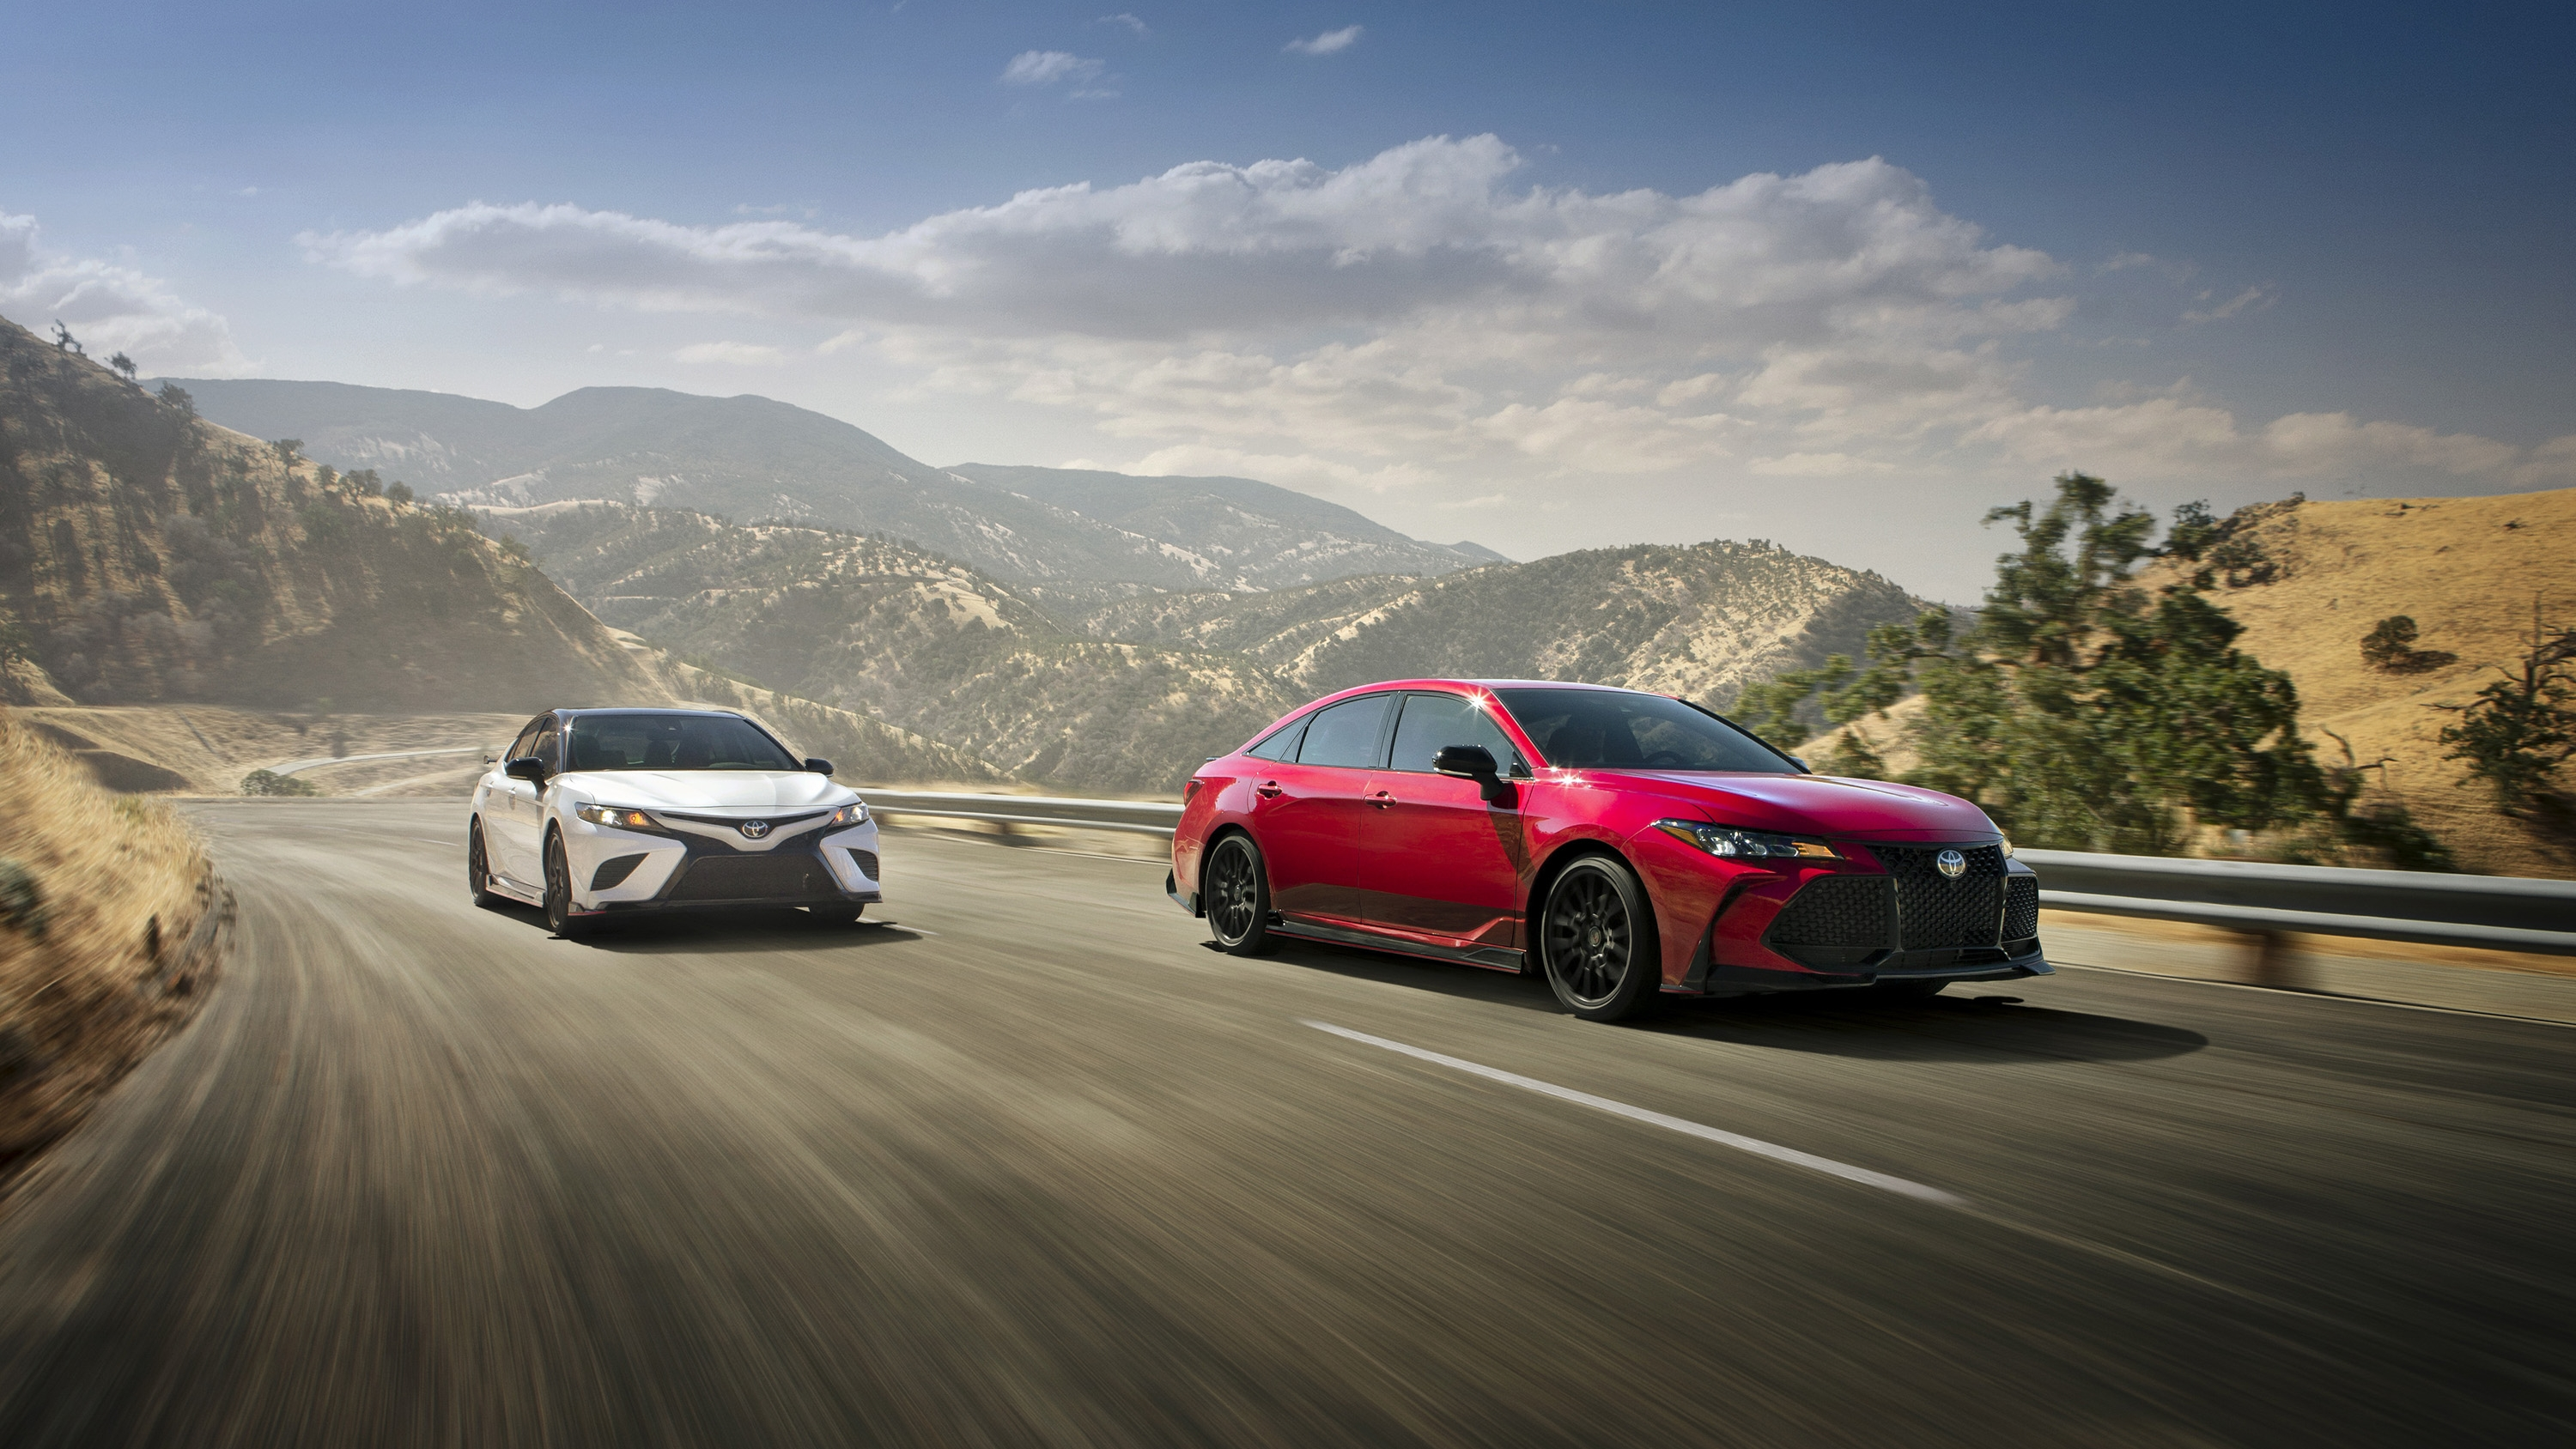 2020 Toyota Avalon Trd And Camry Trd Pictures Photos